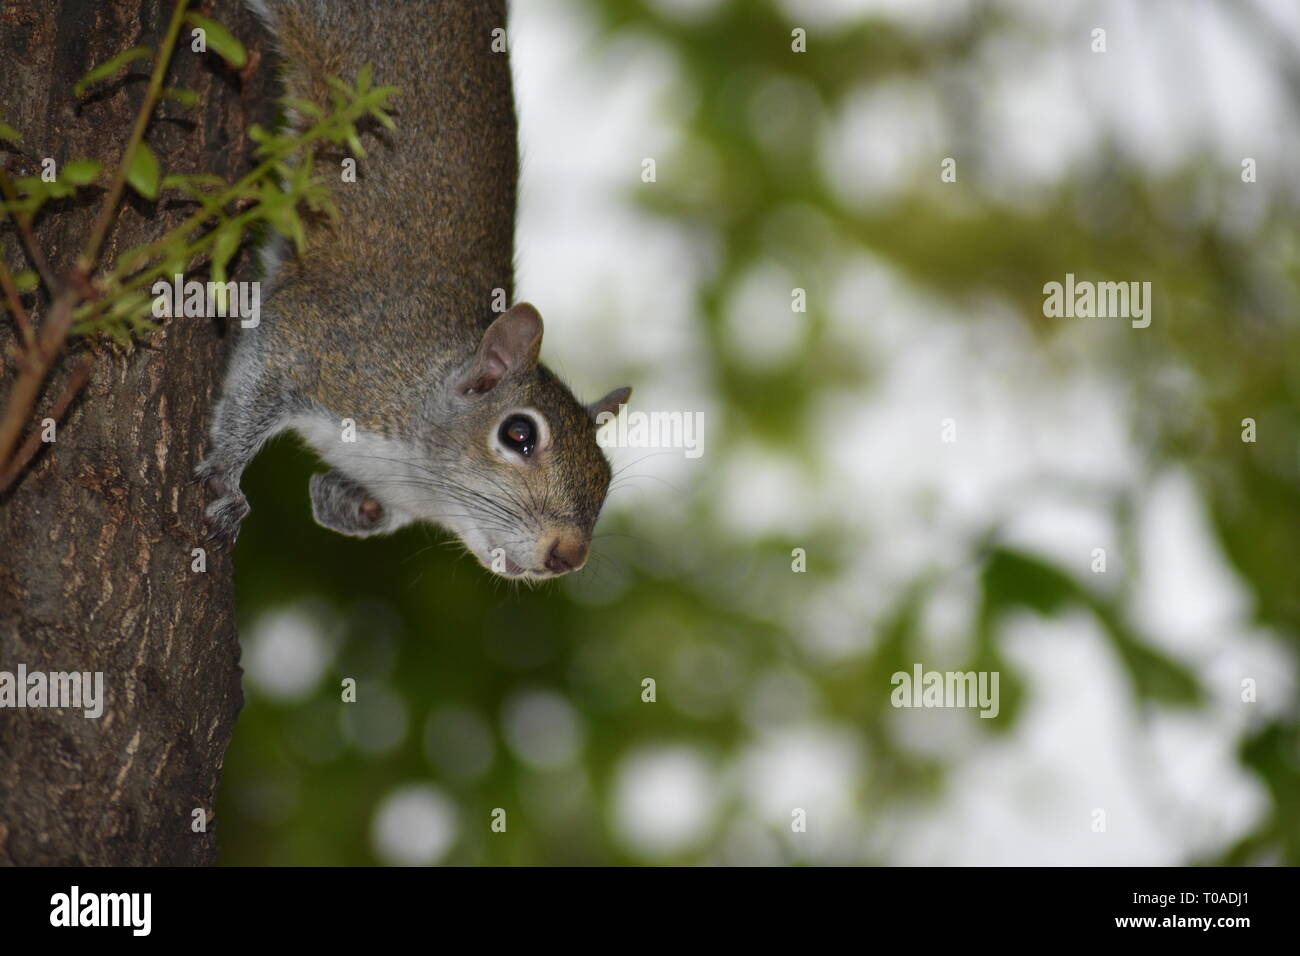 Eastern Grey Squirrel on a Tree Trunk Stopping to Take a Peek - Stock Image